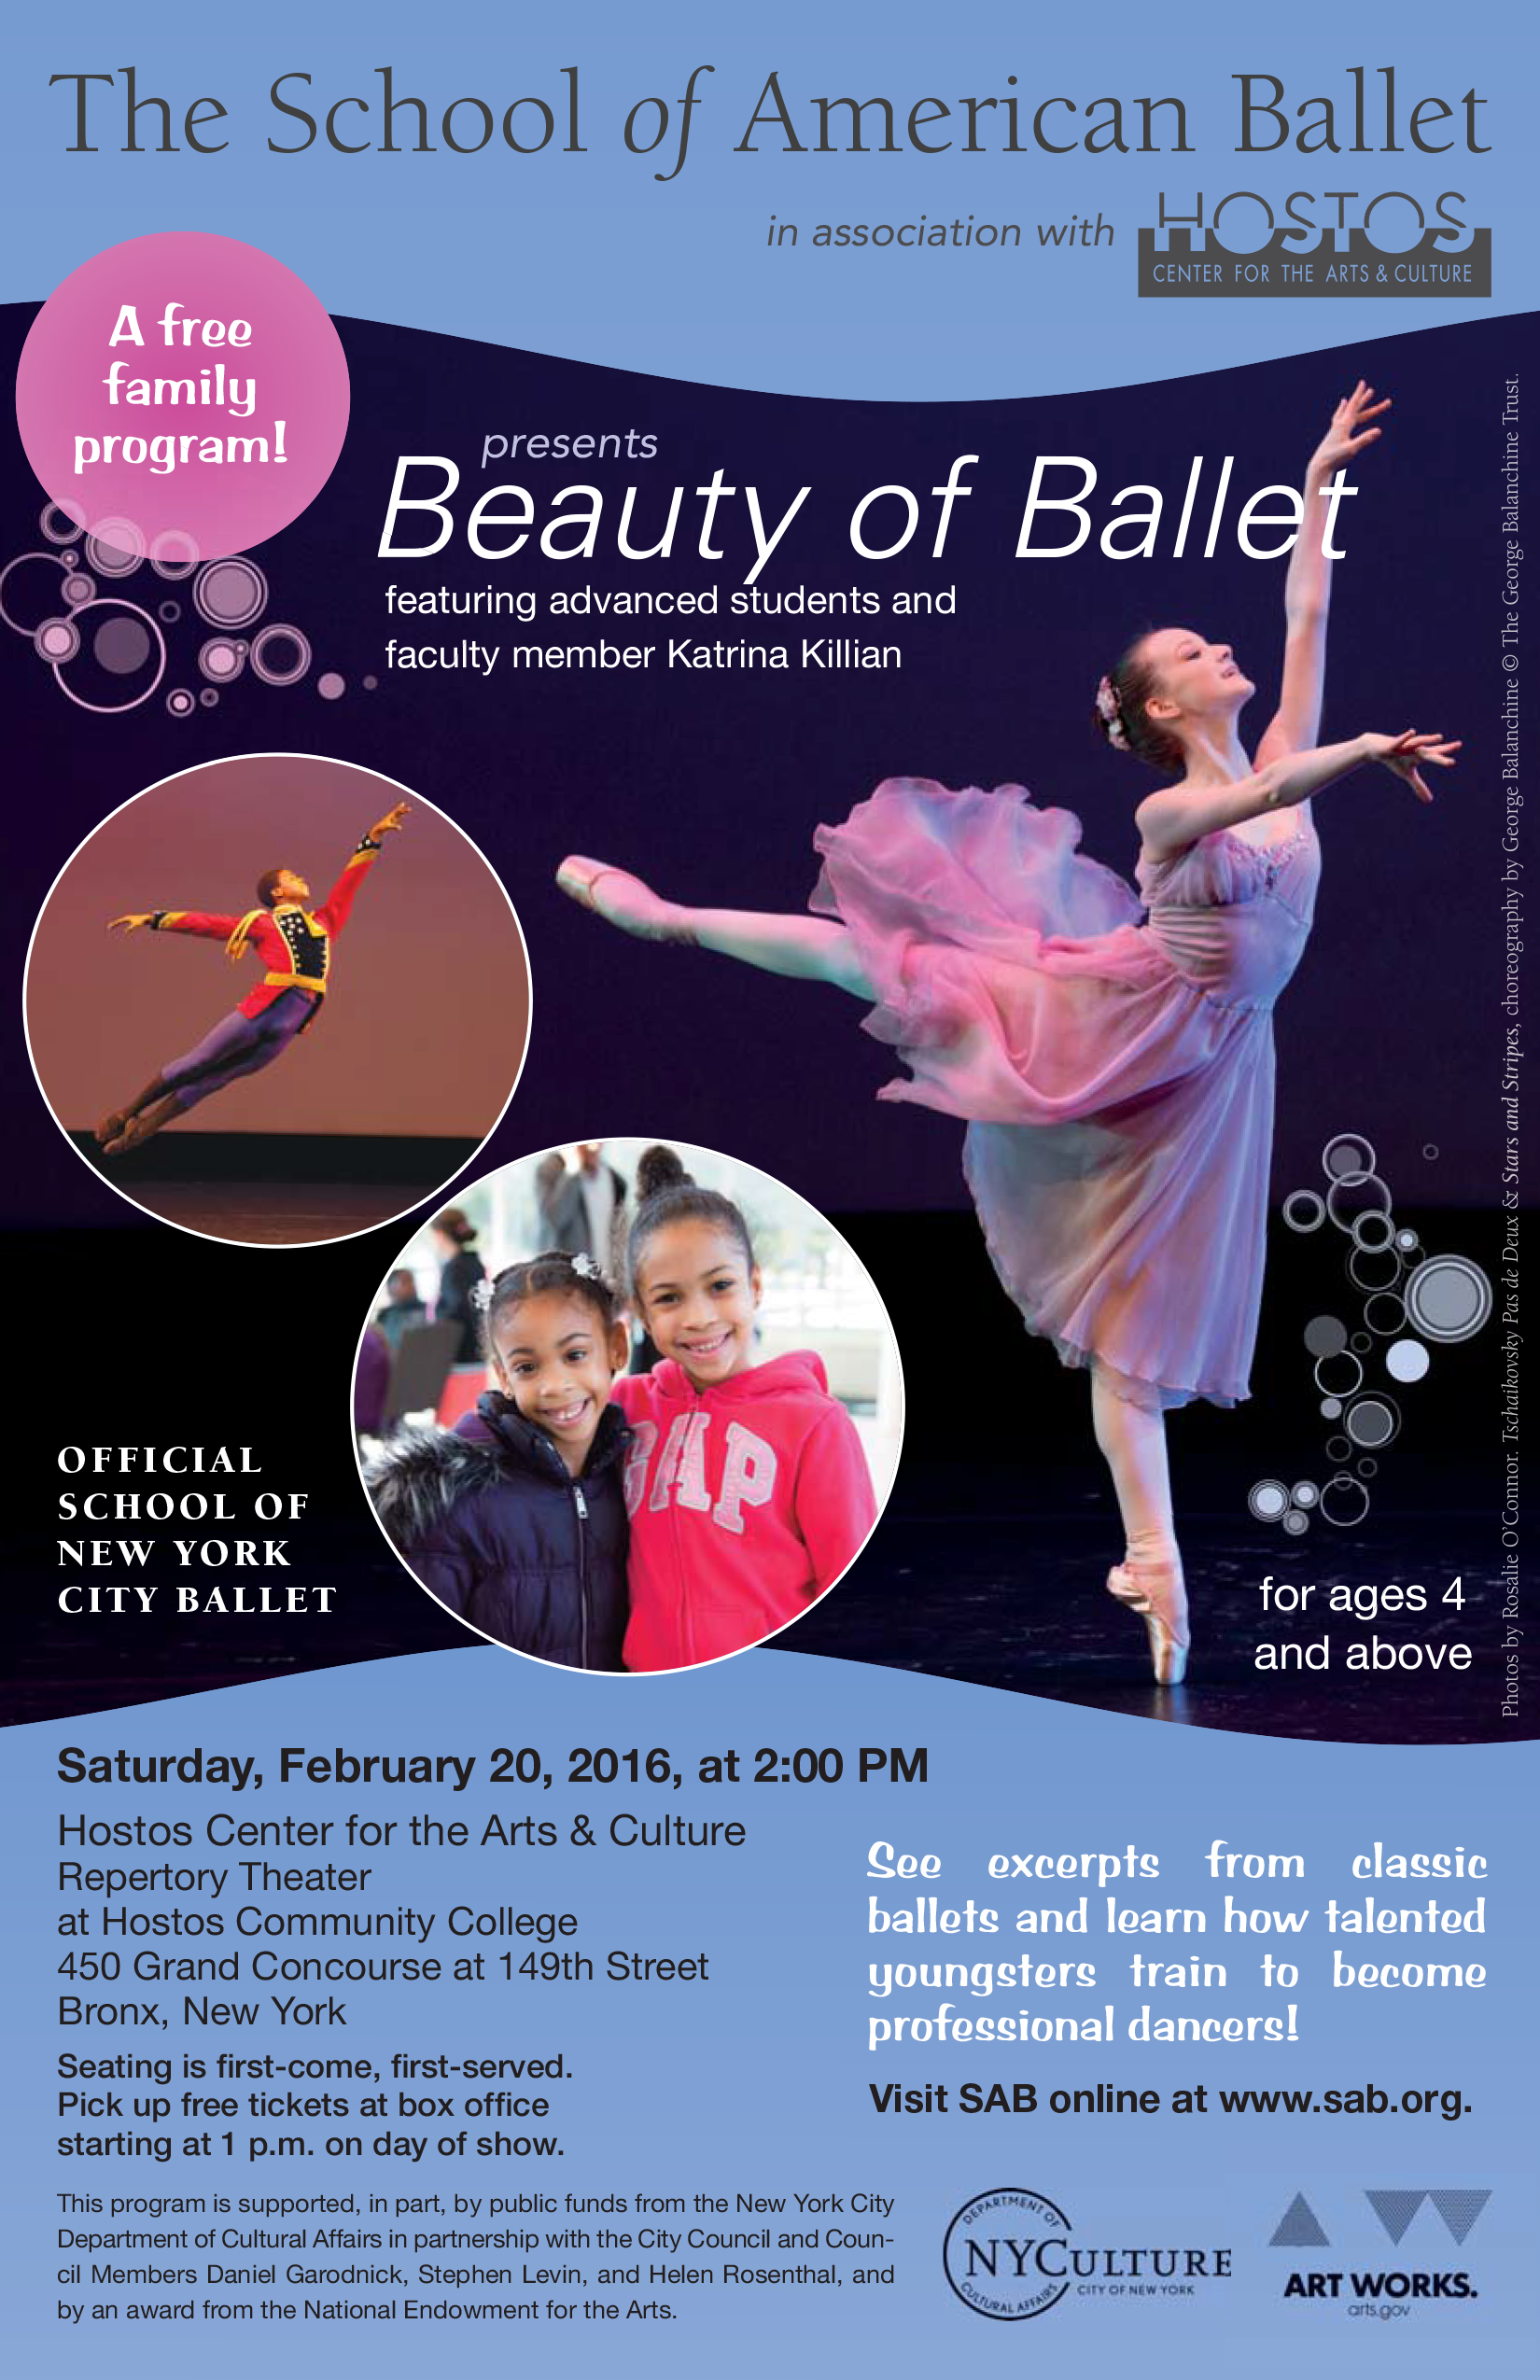 Free: The School of American Ballet presents Beauty of Ballet